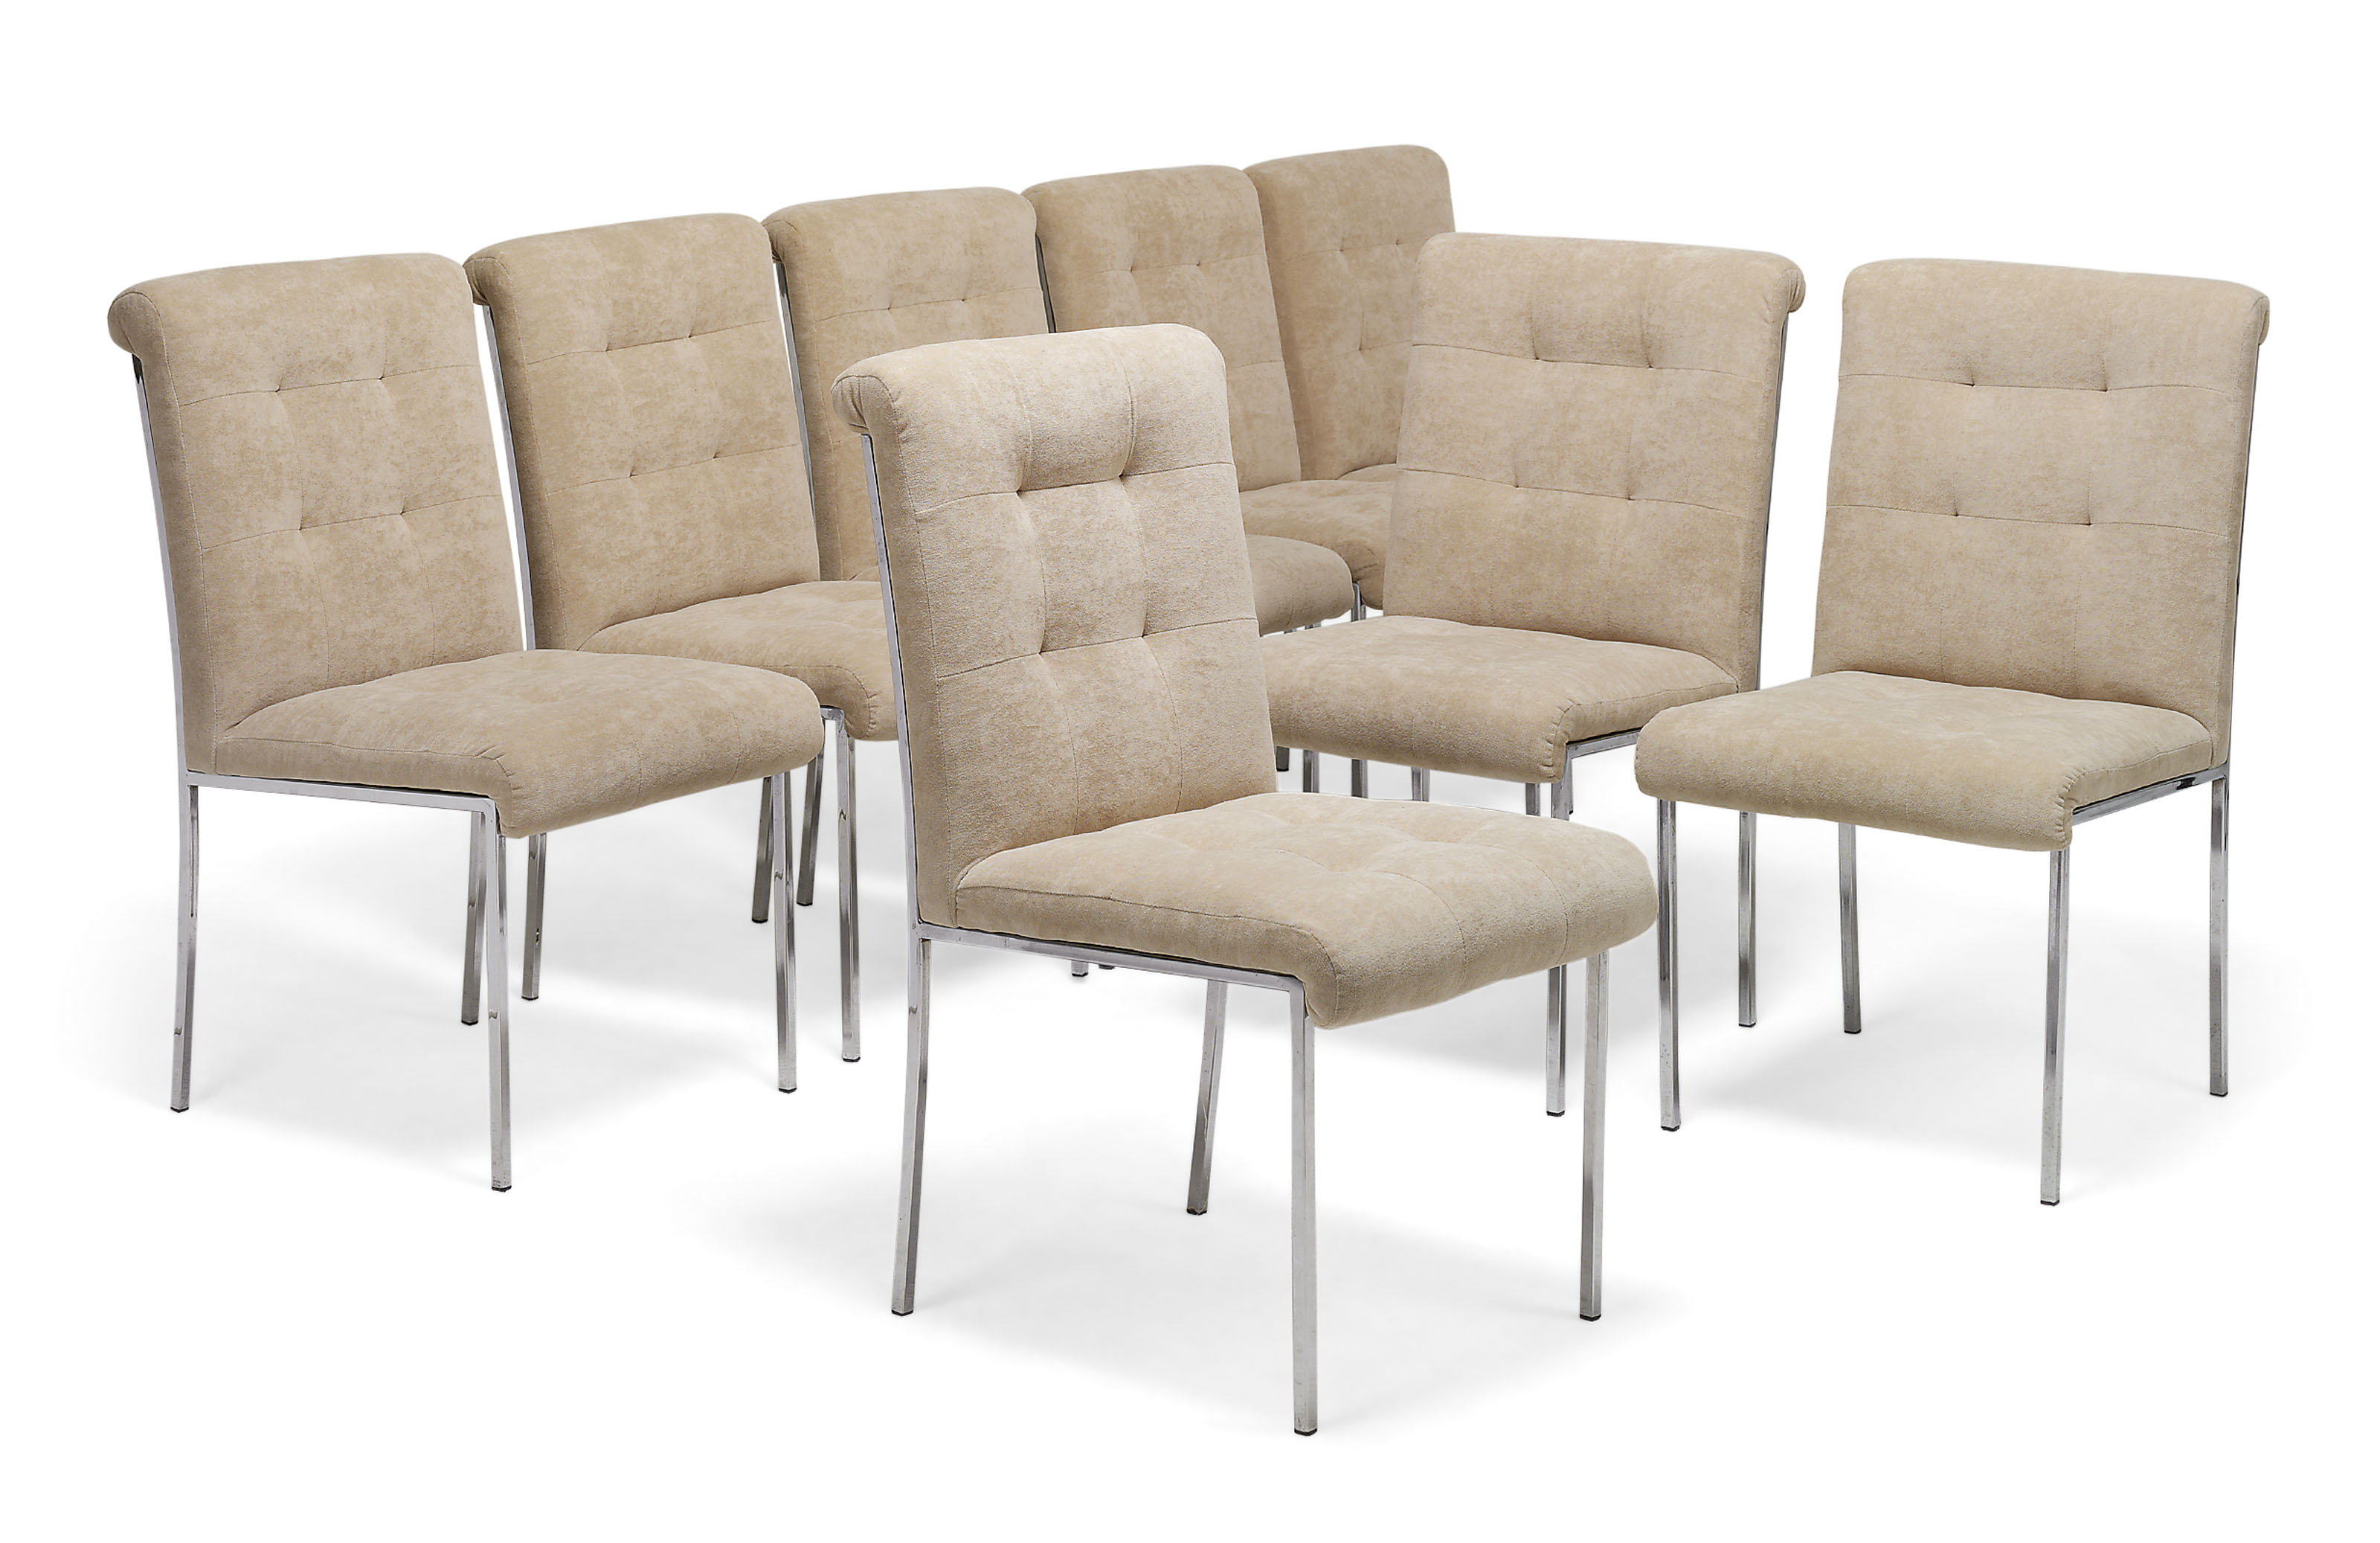 A SET OF EIGHT CHROME-PLATED DINING CHAIRS